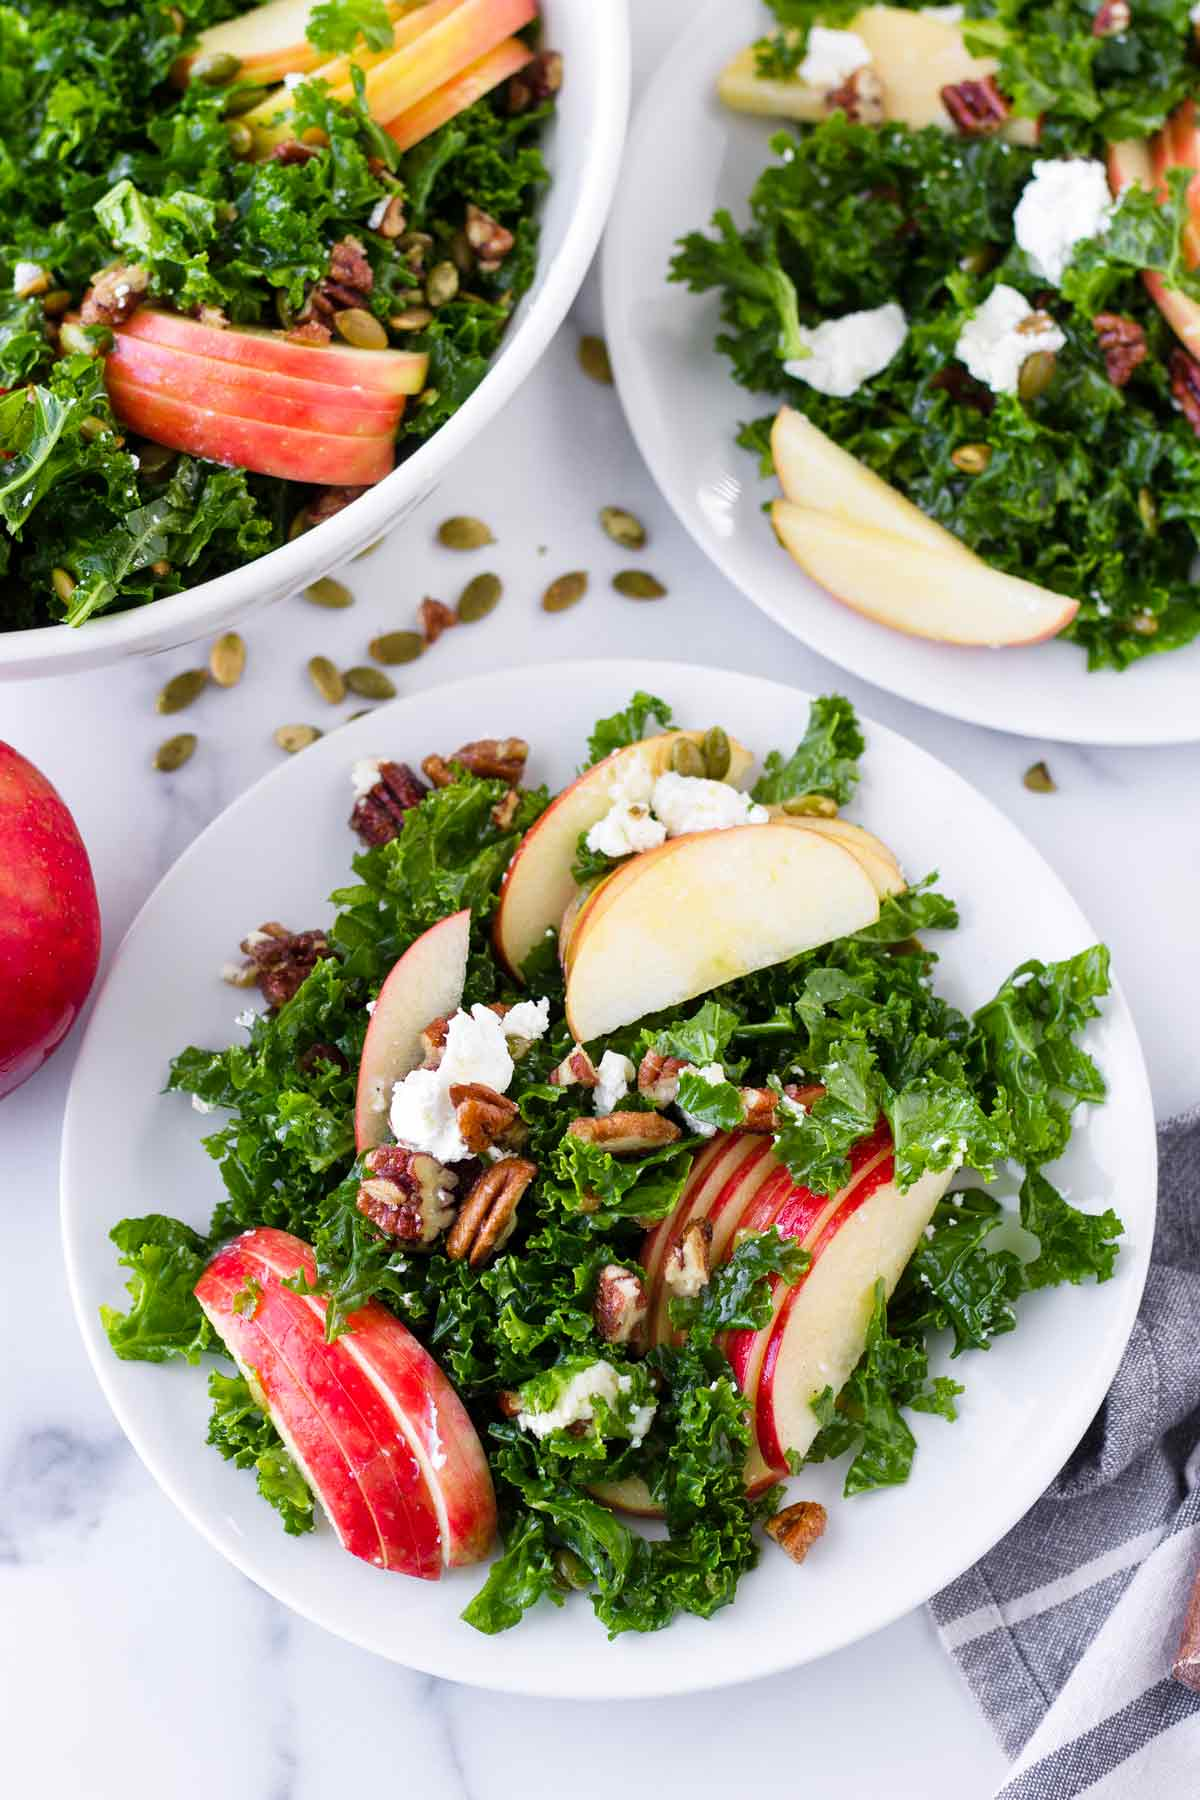 individual servings of kale and apple salad on plates